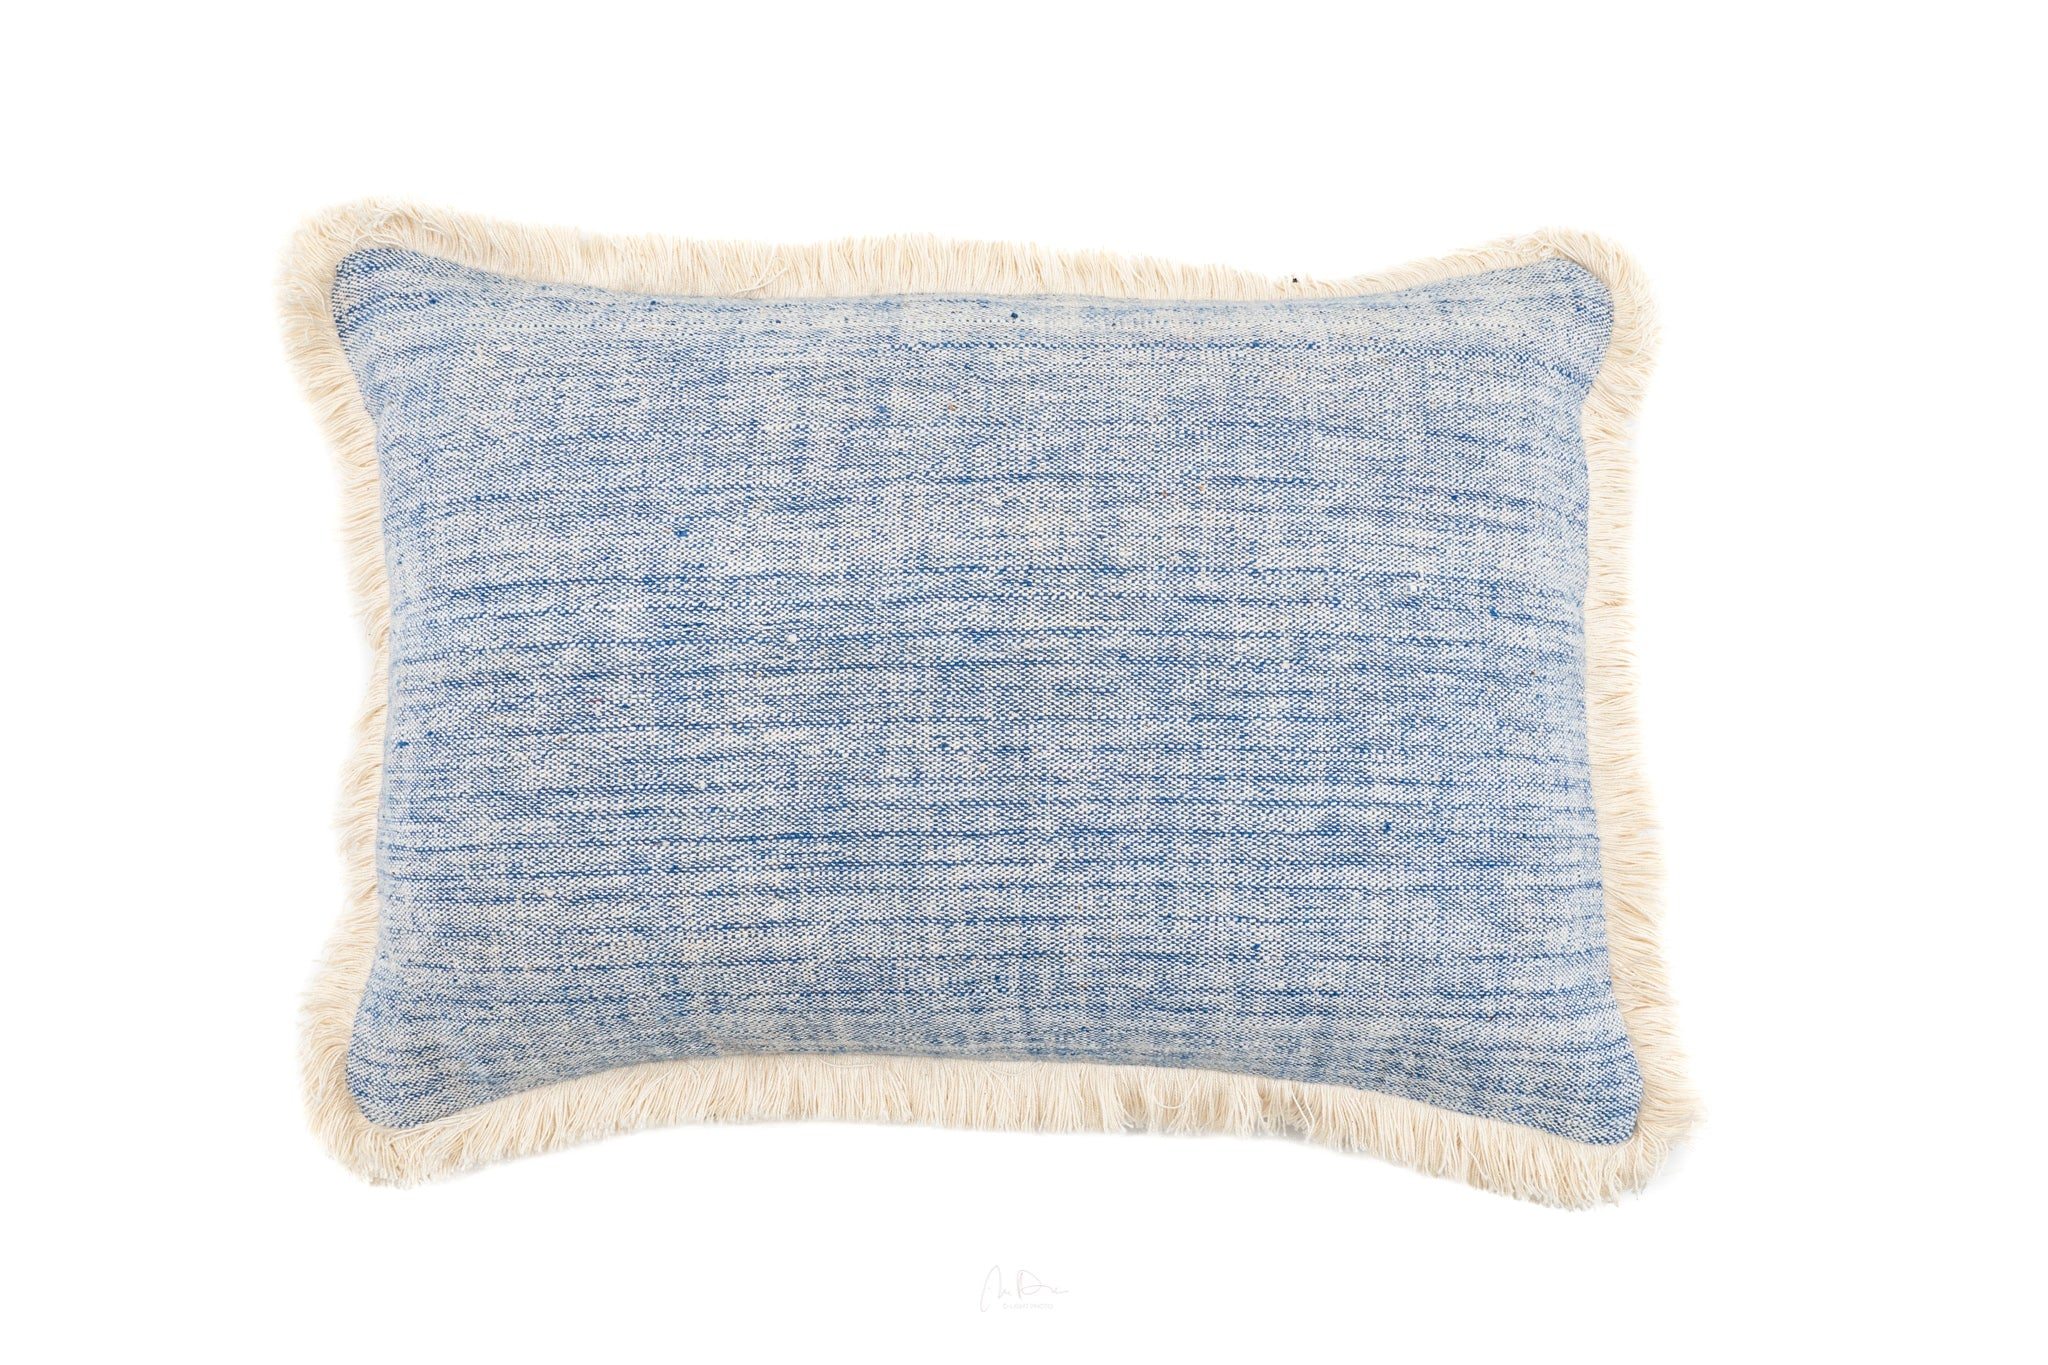 Pillow: Handwoven antique Bulgarian cotton - P233